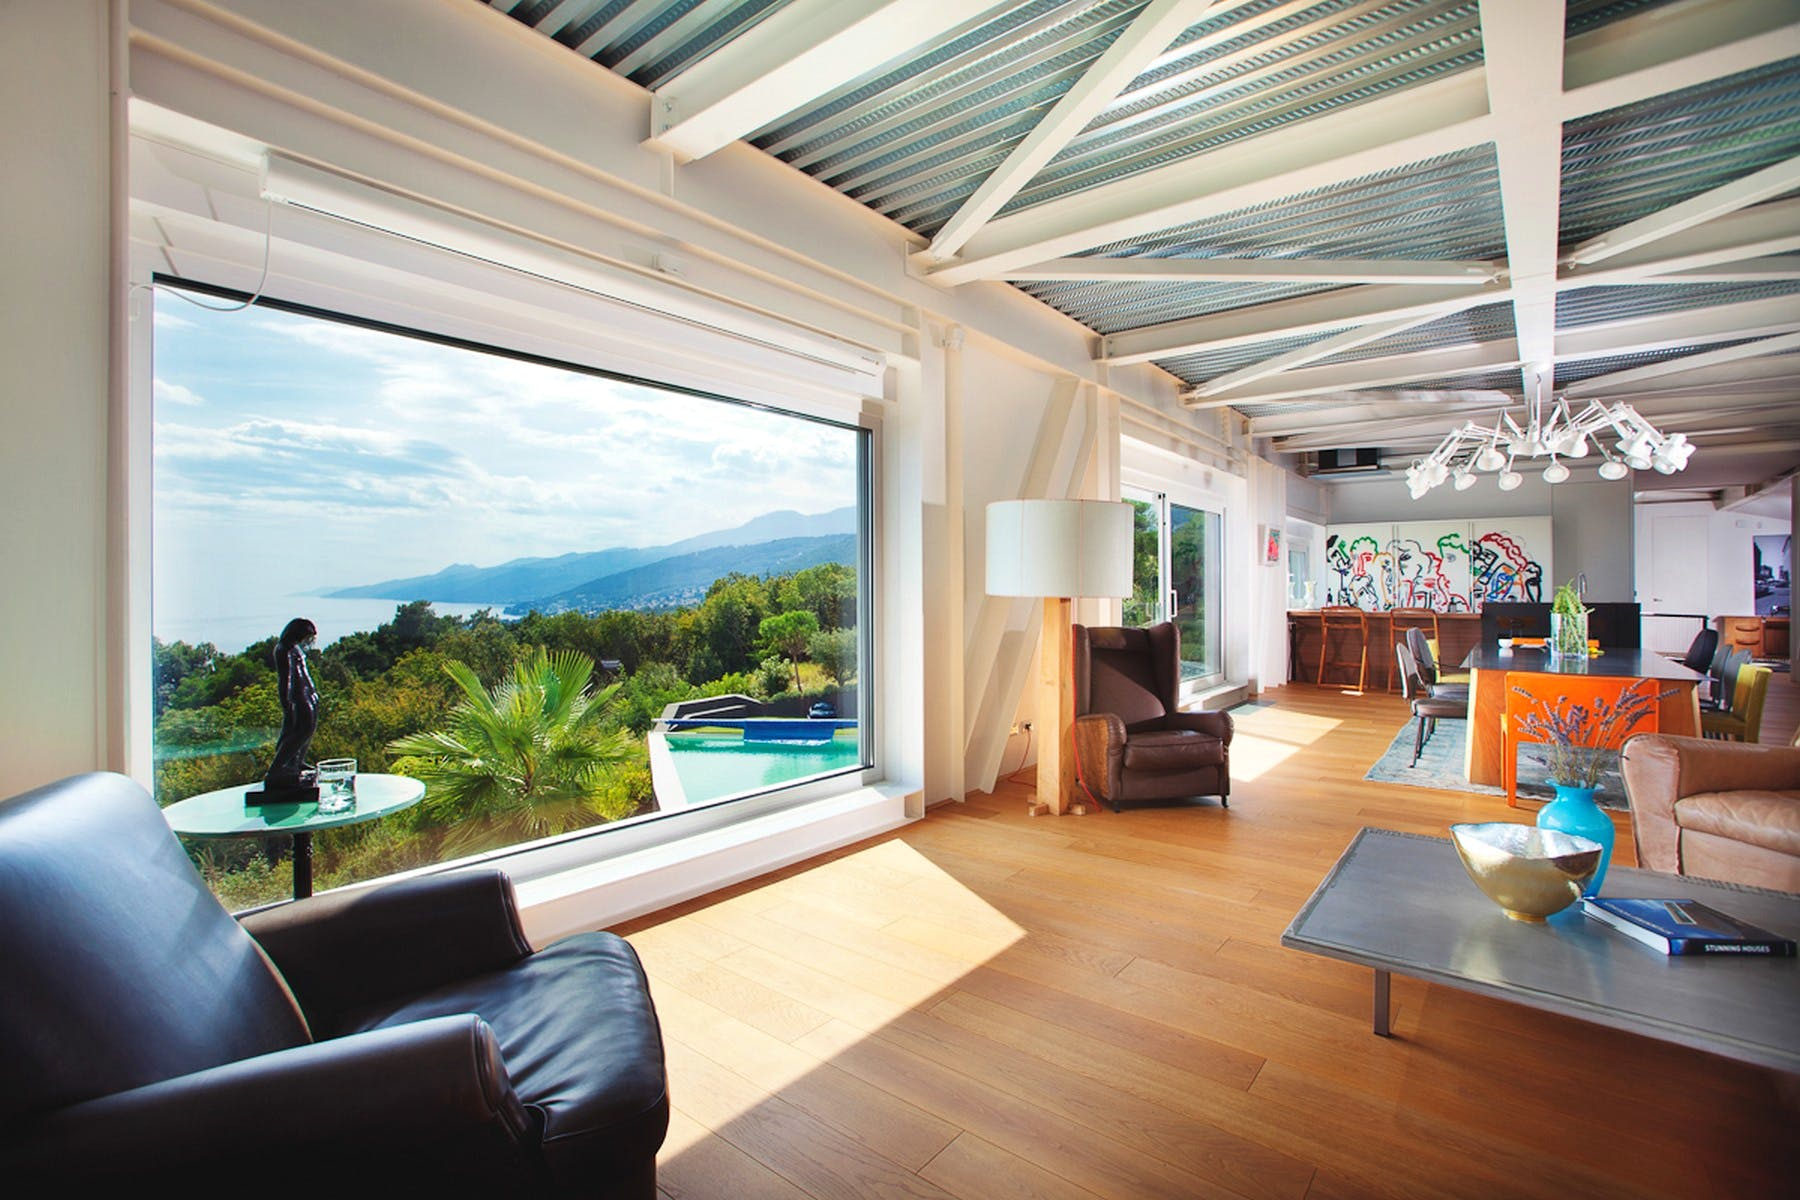 Living room with a seaview